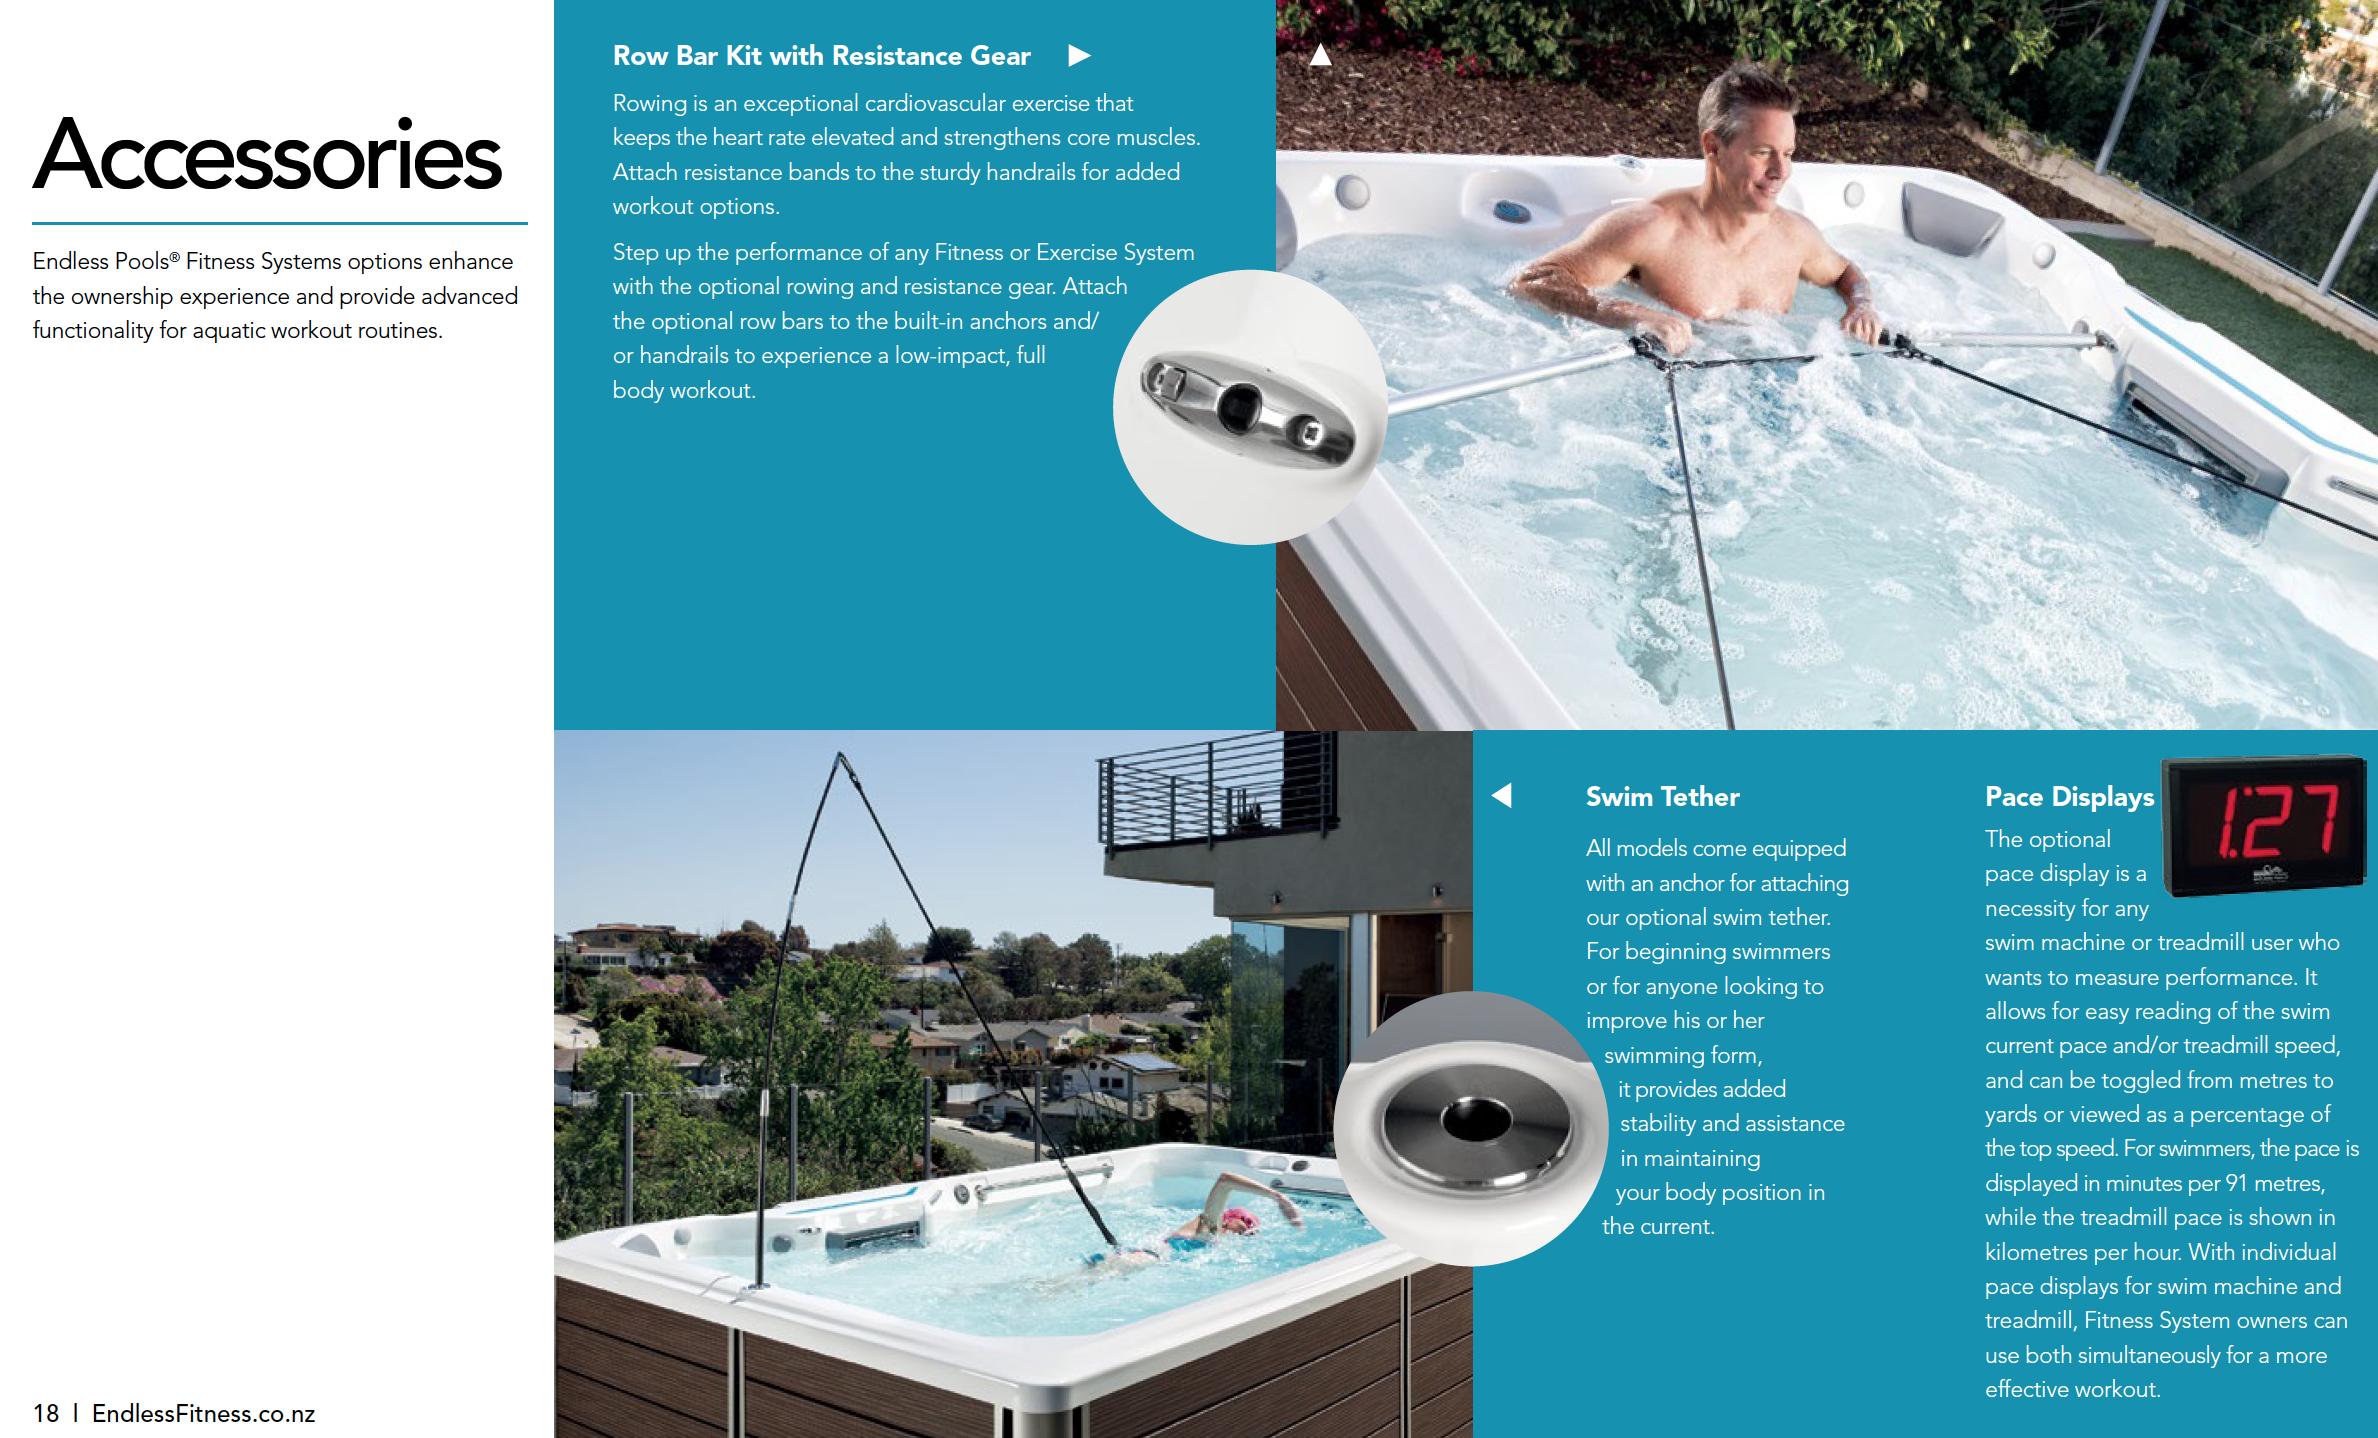 swim-spa-nz-endless-pools-2020-04-18-at-9.55.06-am-8.png